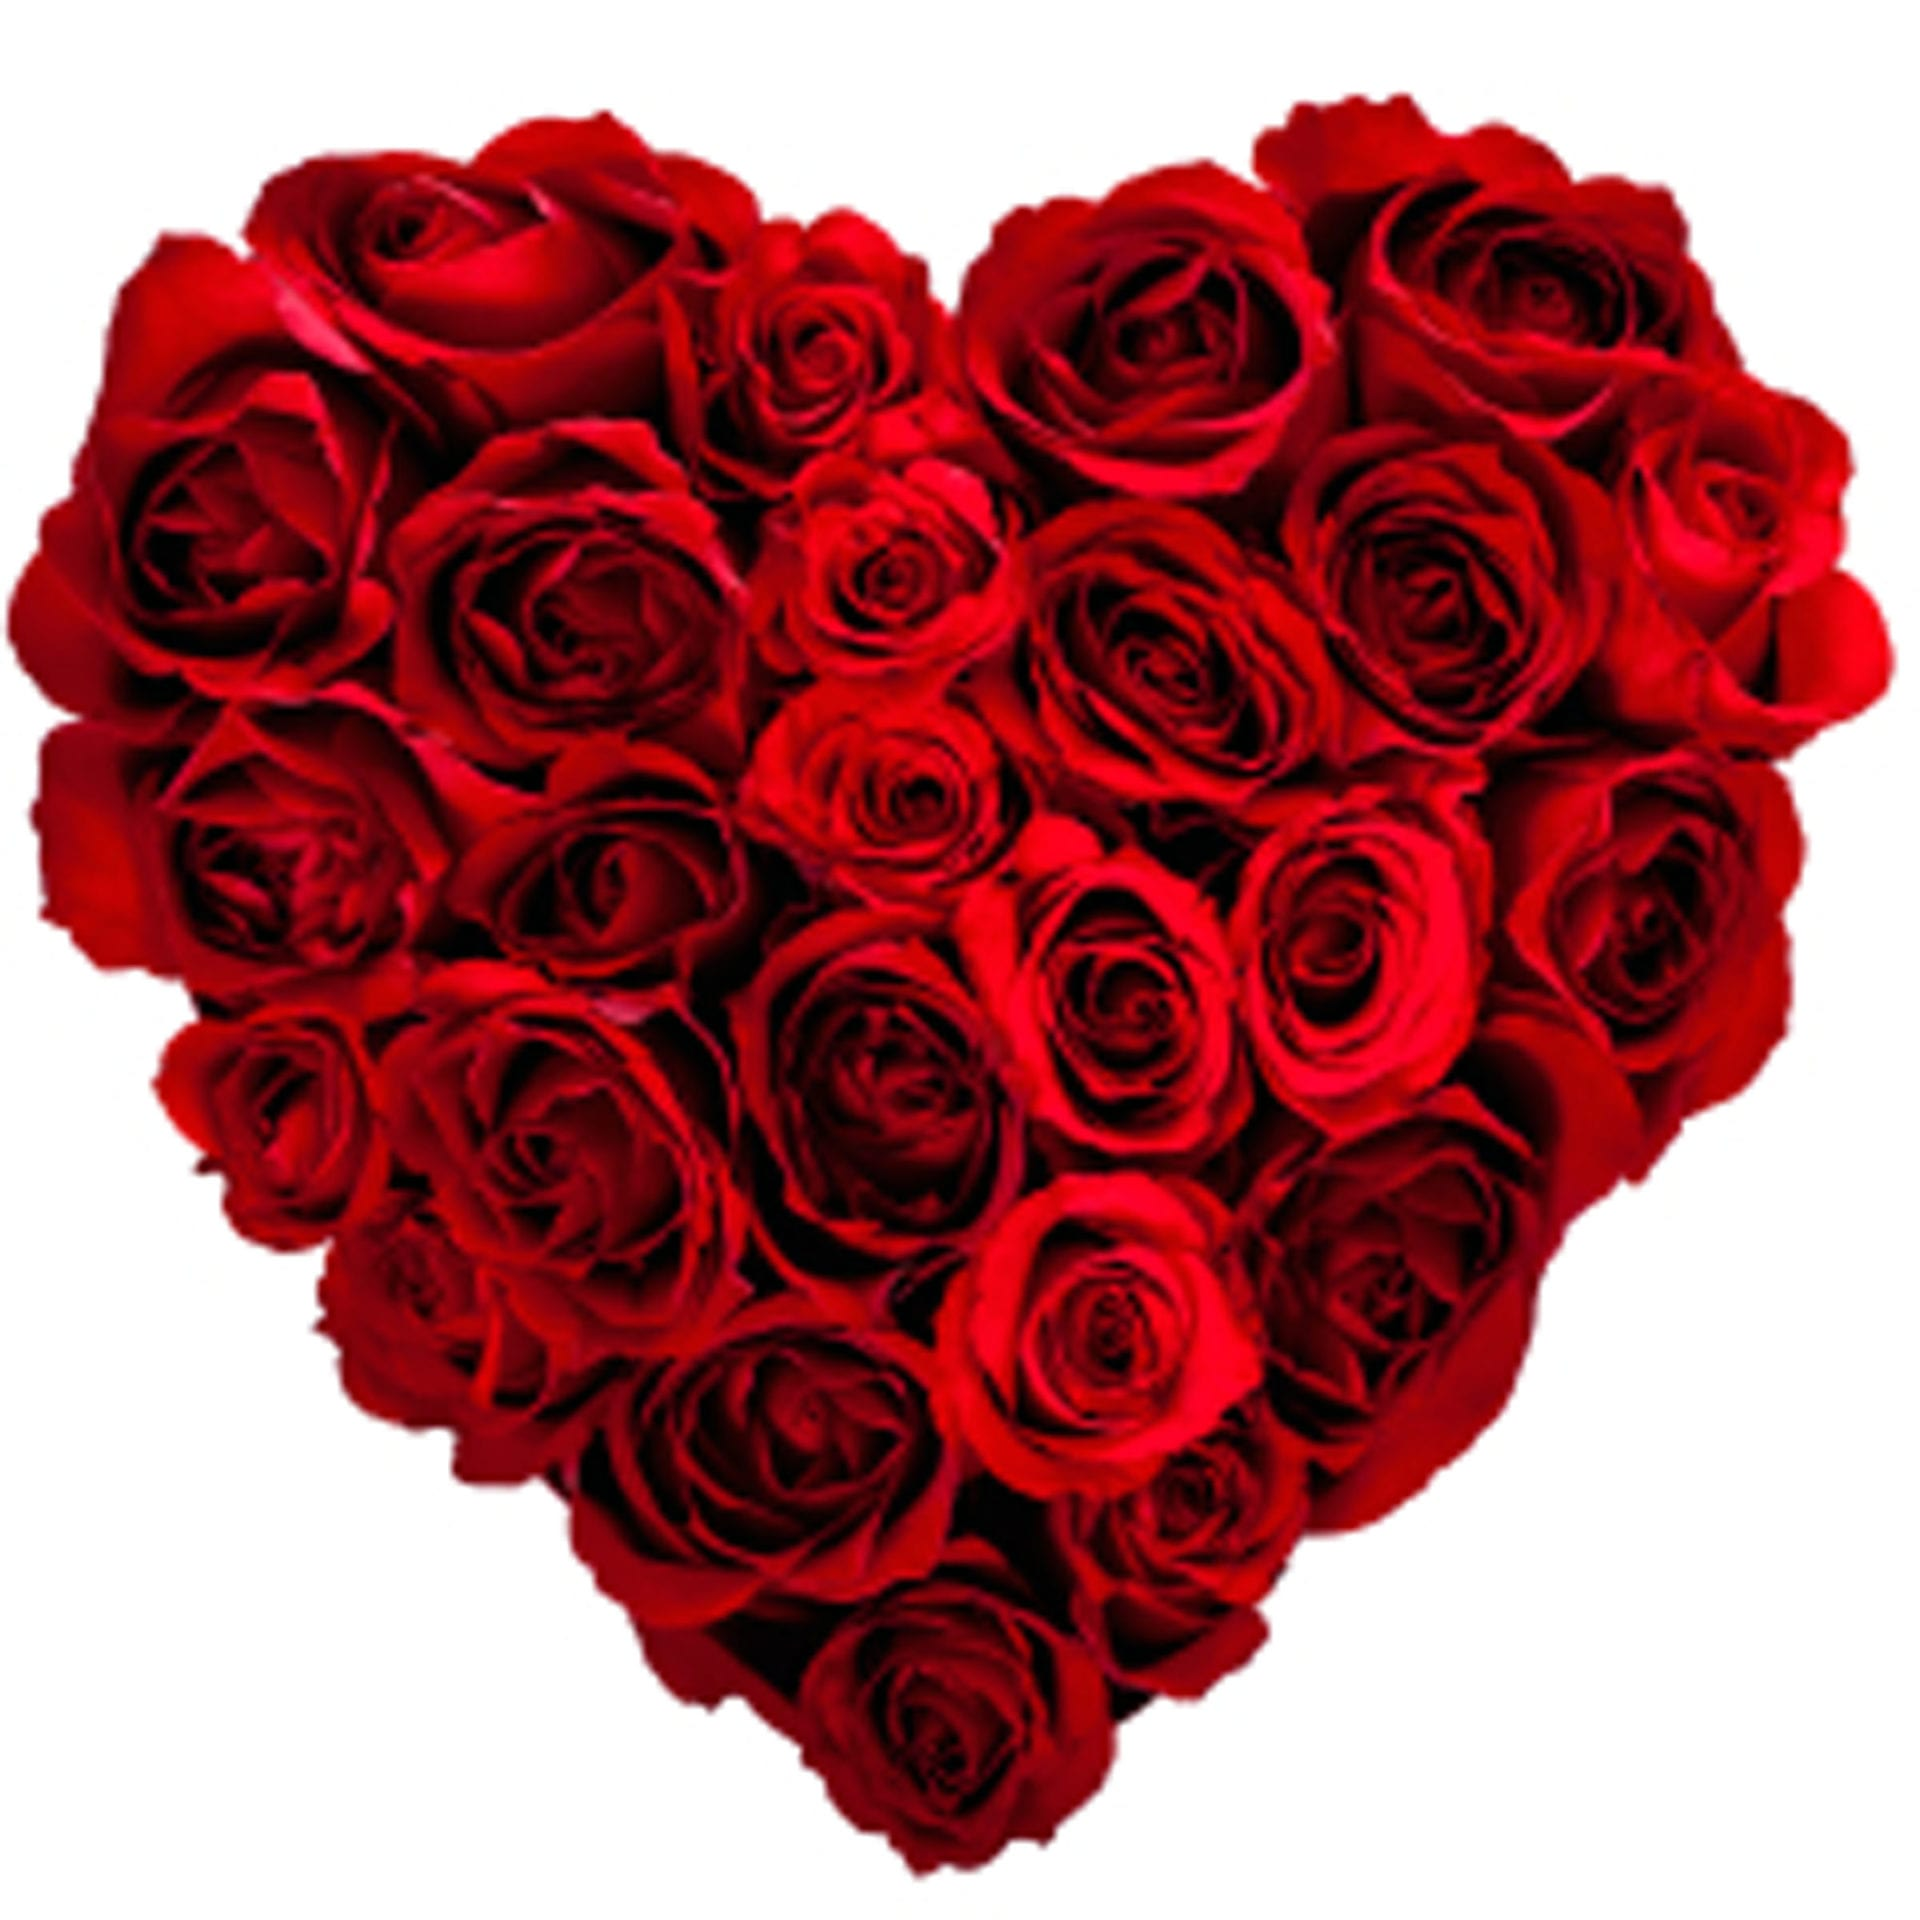 try this 6 last minute valentine s ideas for your community